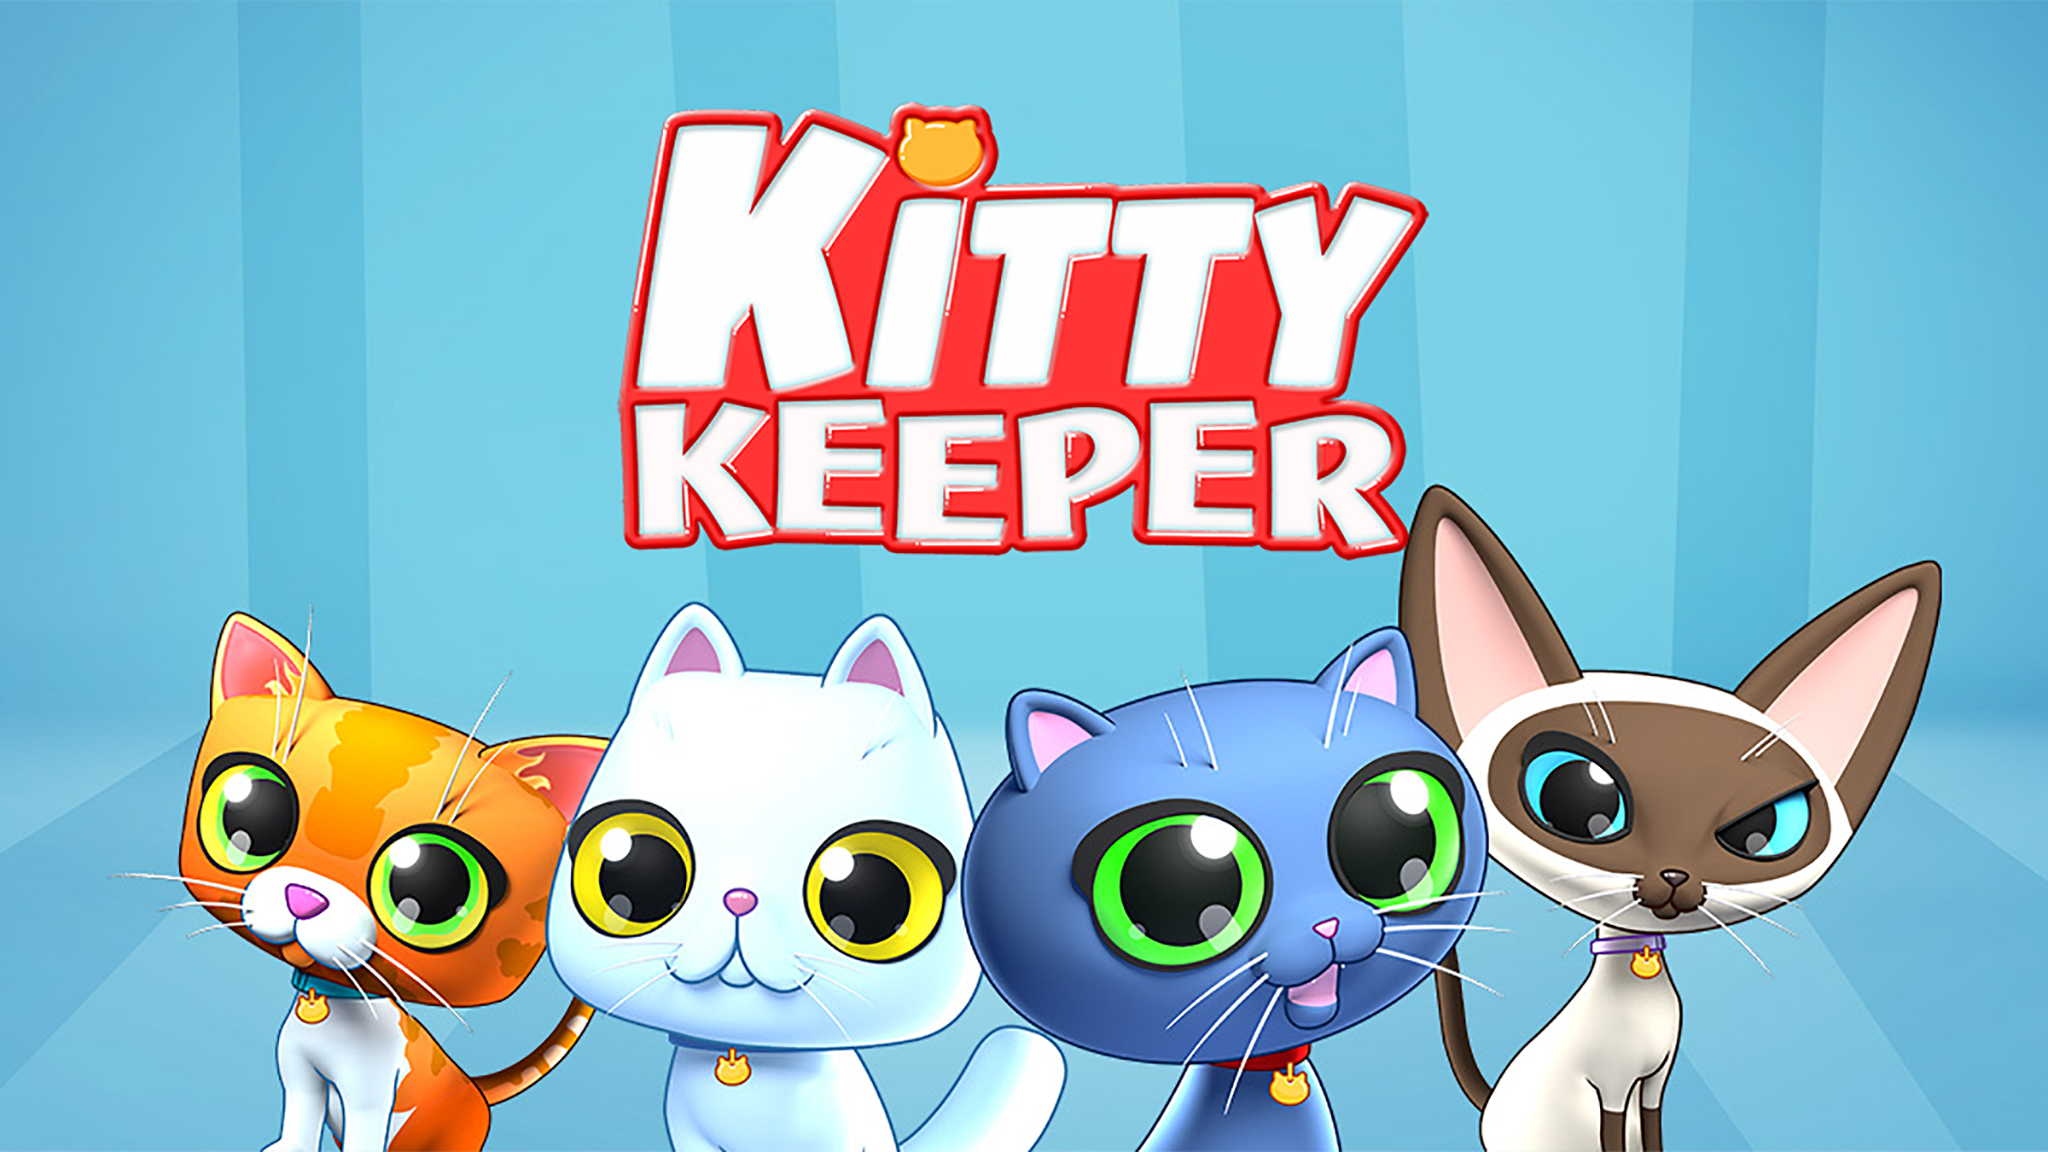 Kitty Keeper